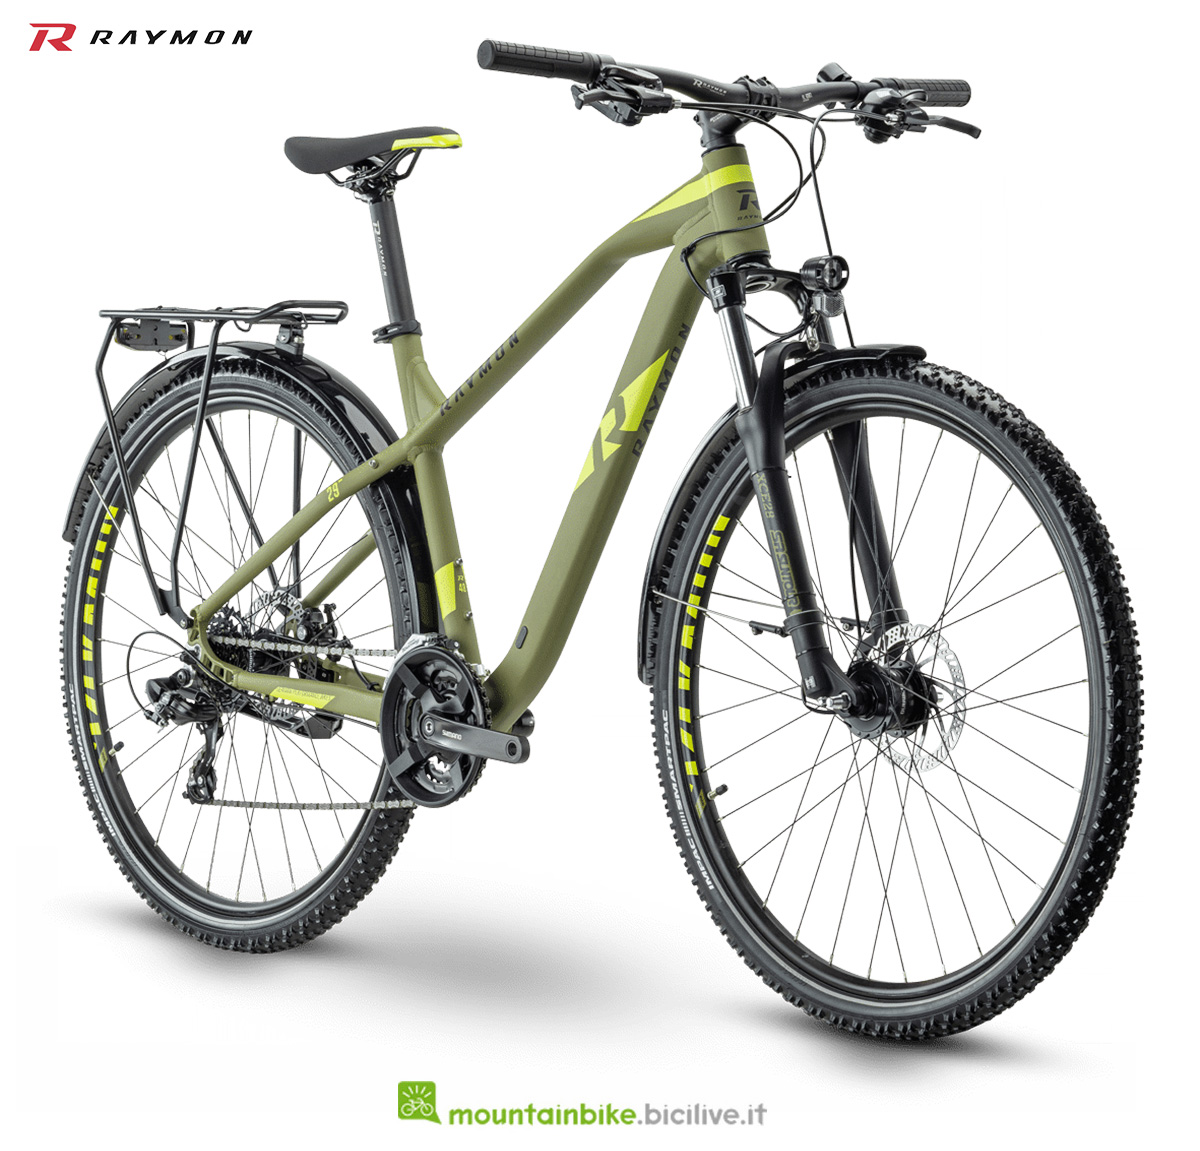 La nuova mountain bike della gamma 2021 R Raymon Hardray Nine 1.5 Street